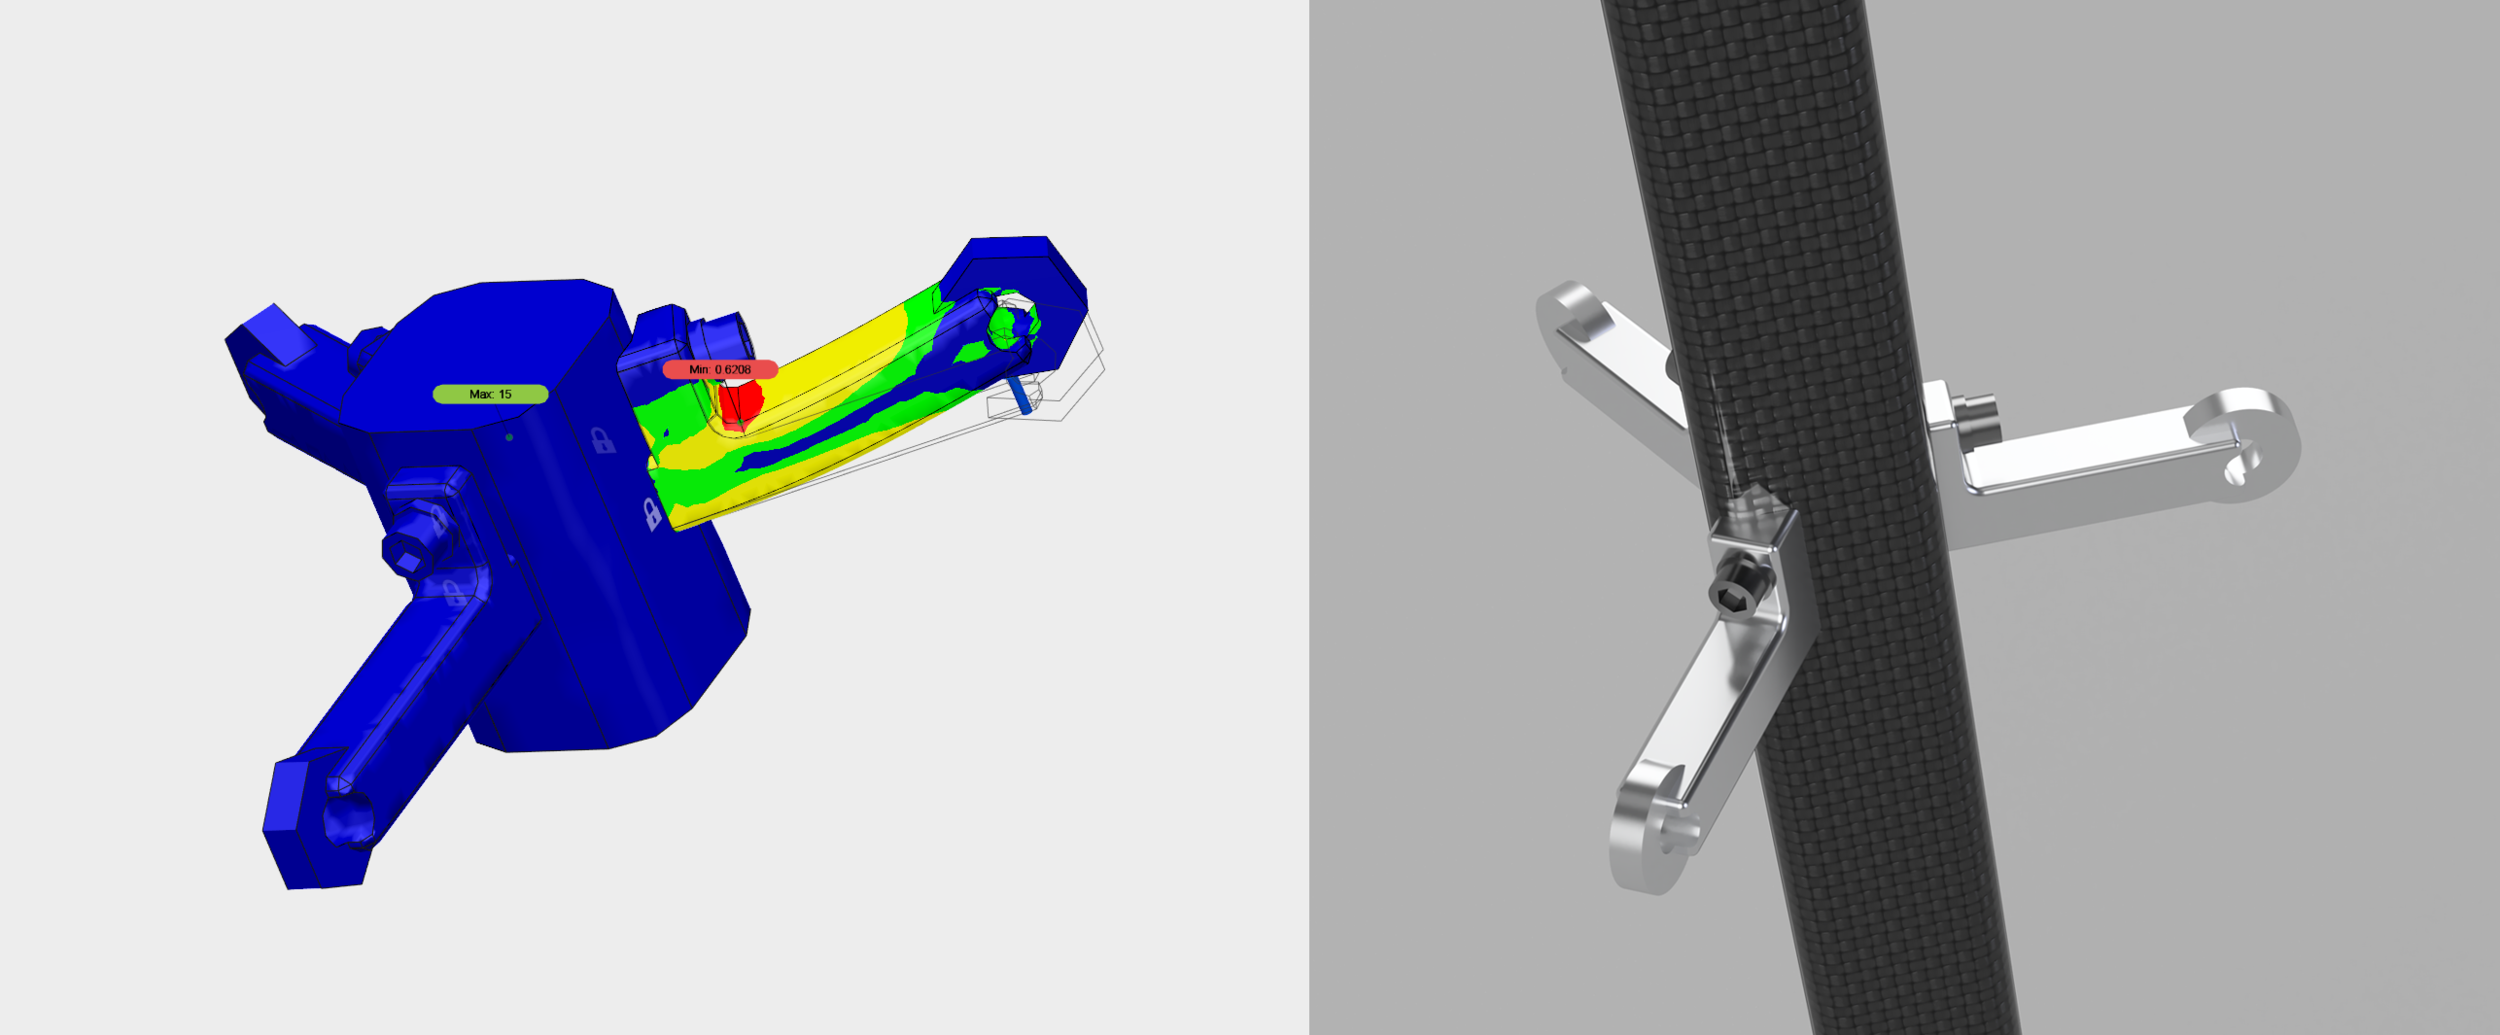 Parachute tether assembly. FEA analysis of chute opening shock (left), assembly installed in the main strut (right).